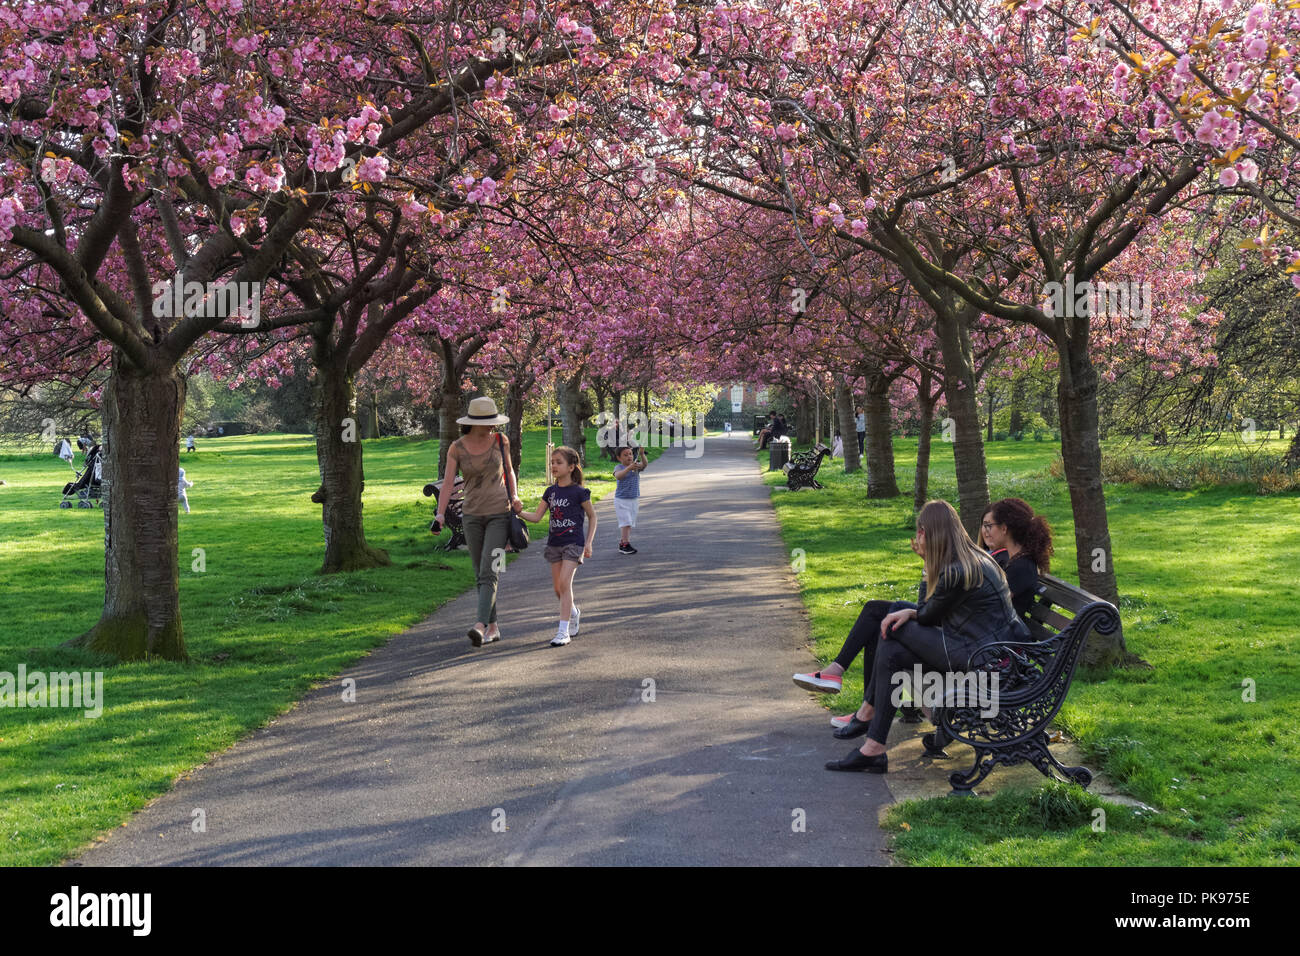 People enjoy spring weather beneath a canopy of cherry blossom in Greenwich Park, London, England, United Kingdom, UK - Stock Image